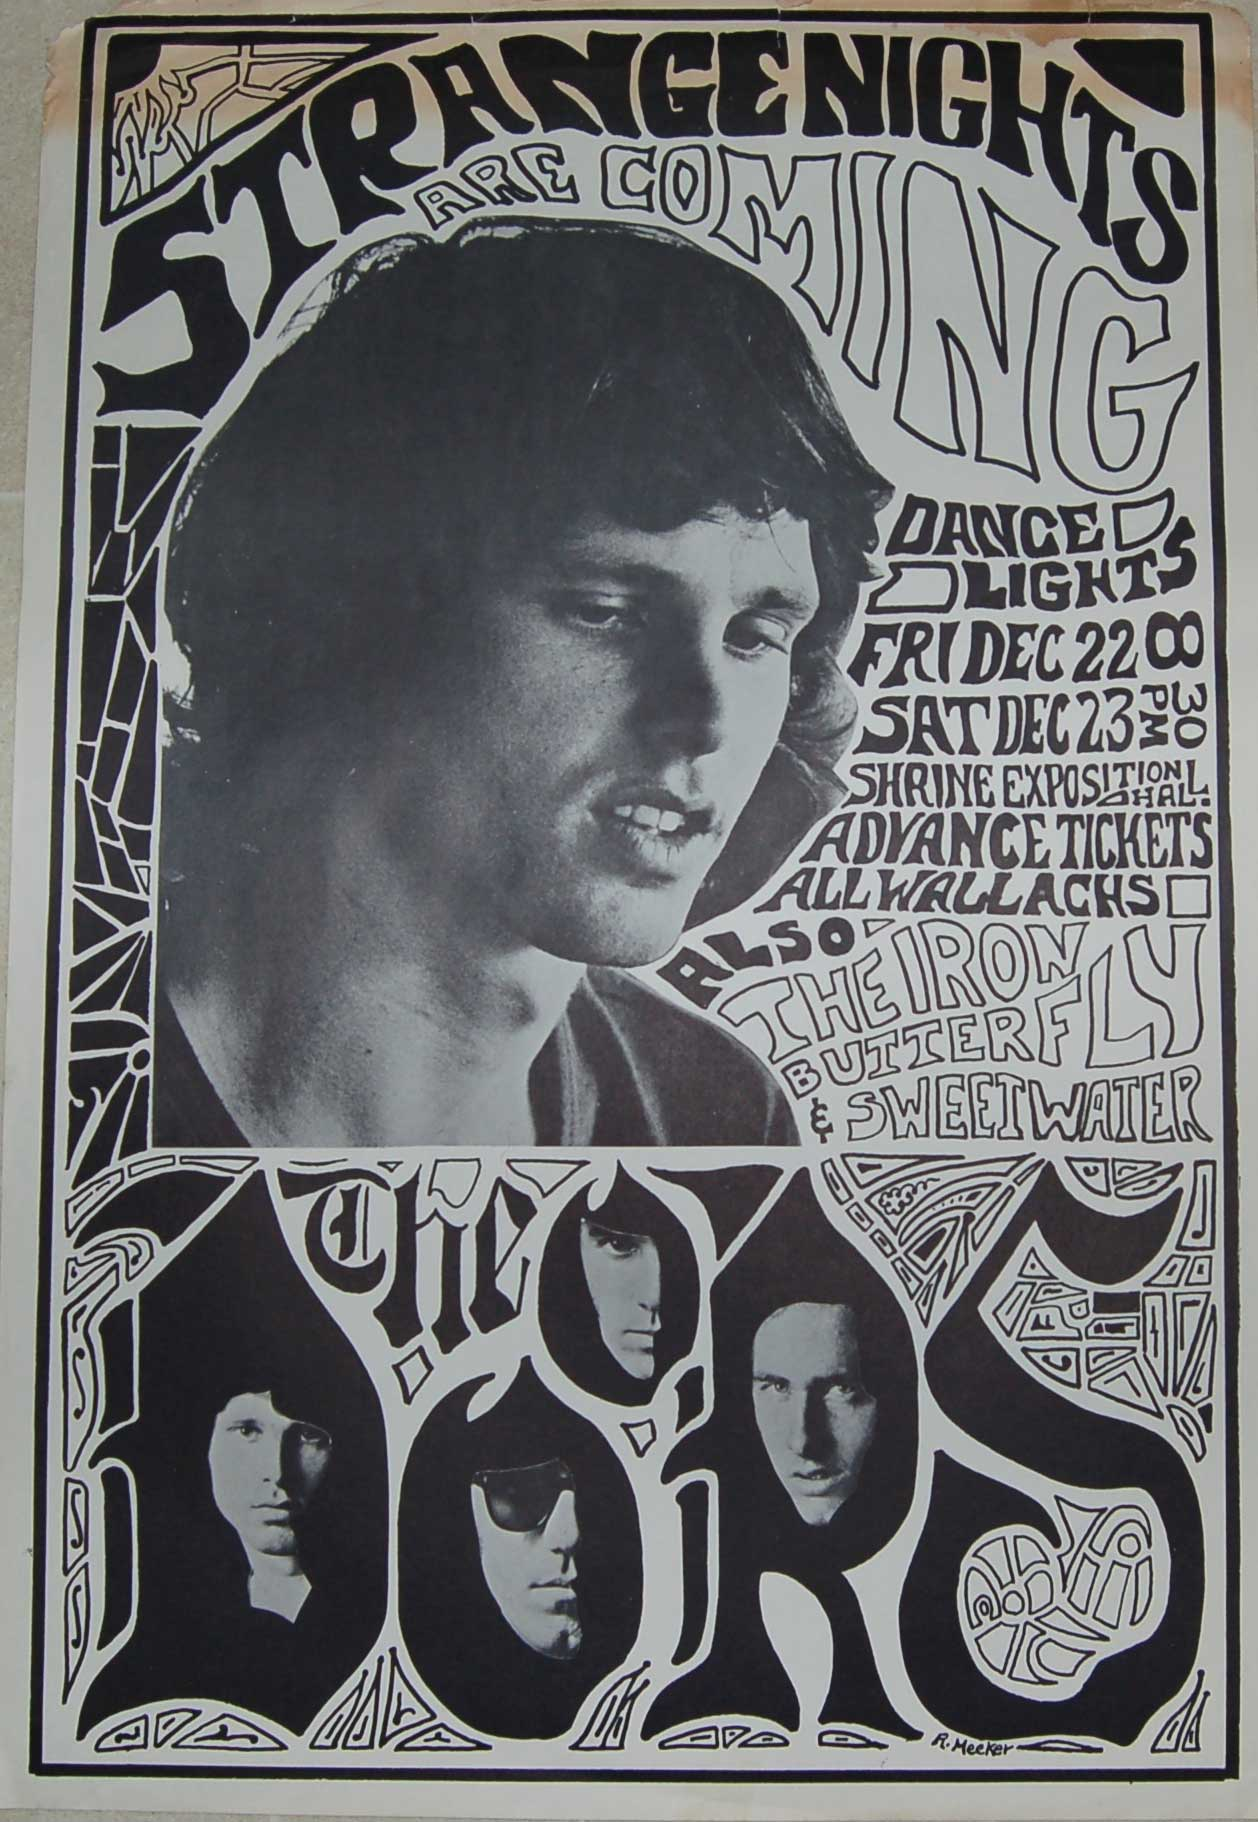 Avid Collector Announces His Search for Original 1967 Jim Morrison and the Doors Shrine Auditorium Concert Posters & Avid Collector Announces His Search for Original 1967 Jim Morrison ...